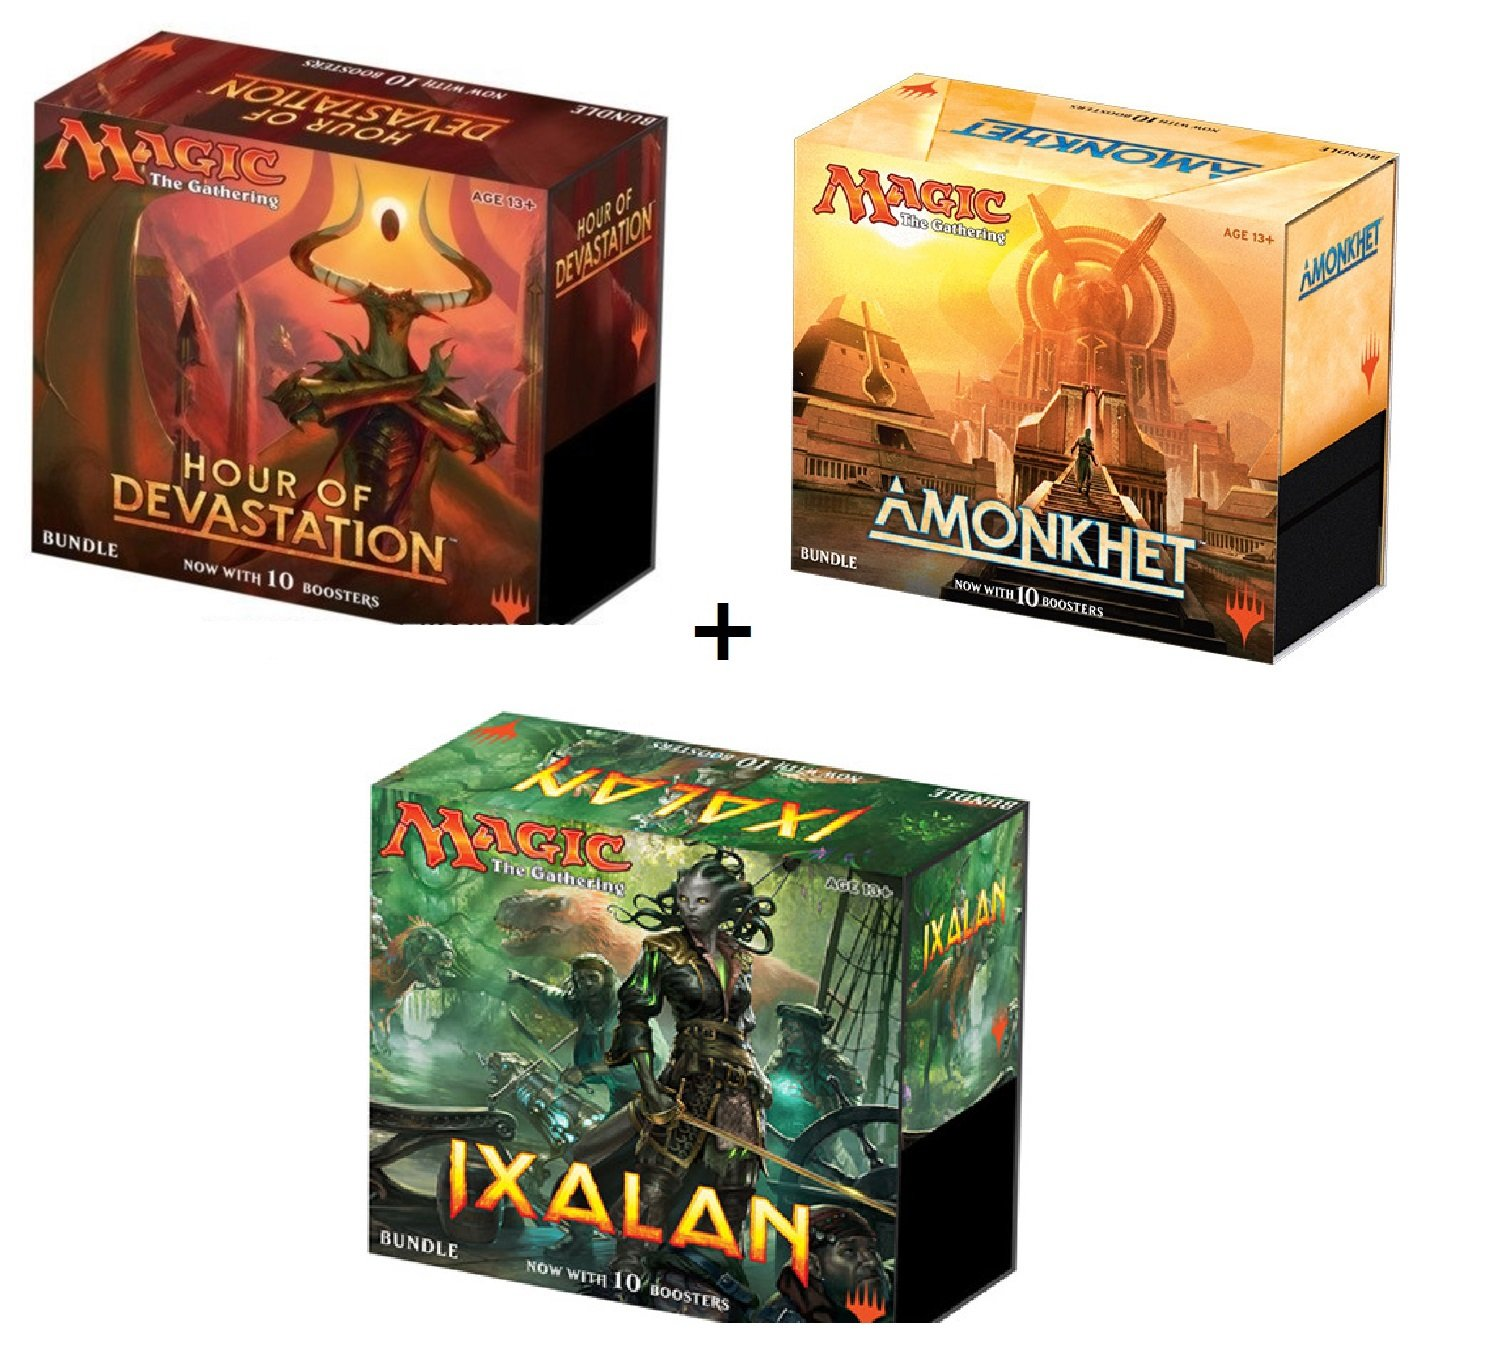 Magic the Gathering: Amonkhet, Hour Of Devastation (HoD), & Ixalan Sealed MTG Bundle Box (Fat Packs) 30 Boosters Perfect for Kids Teens Adults Collectors and Beginners by Wizards of the Coast